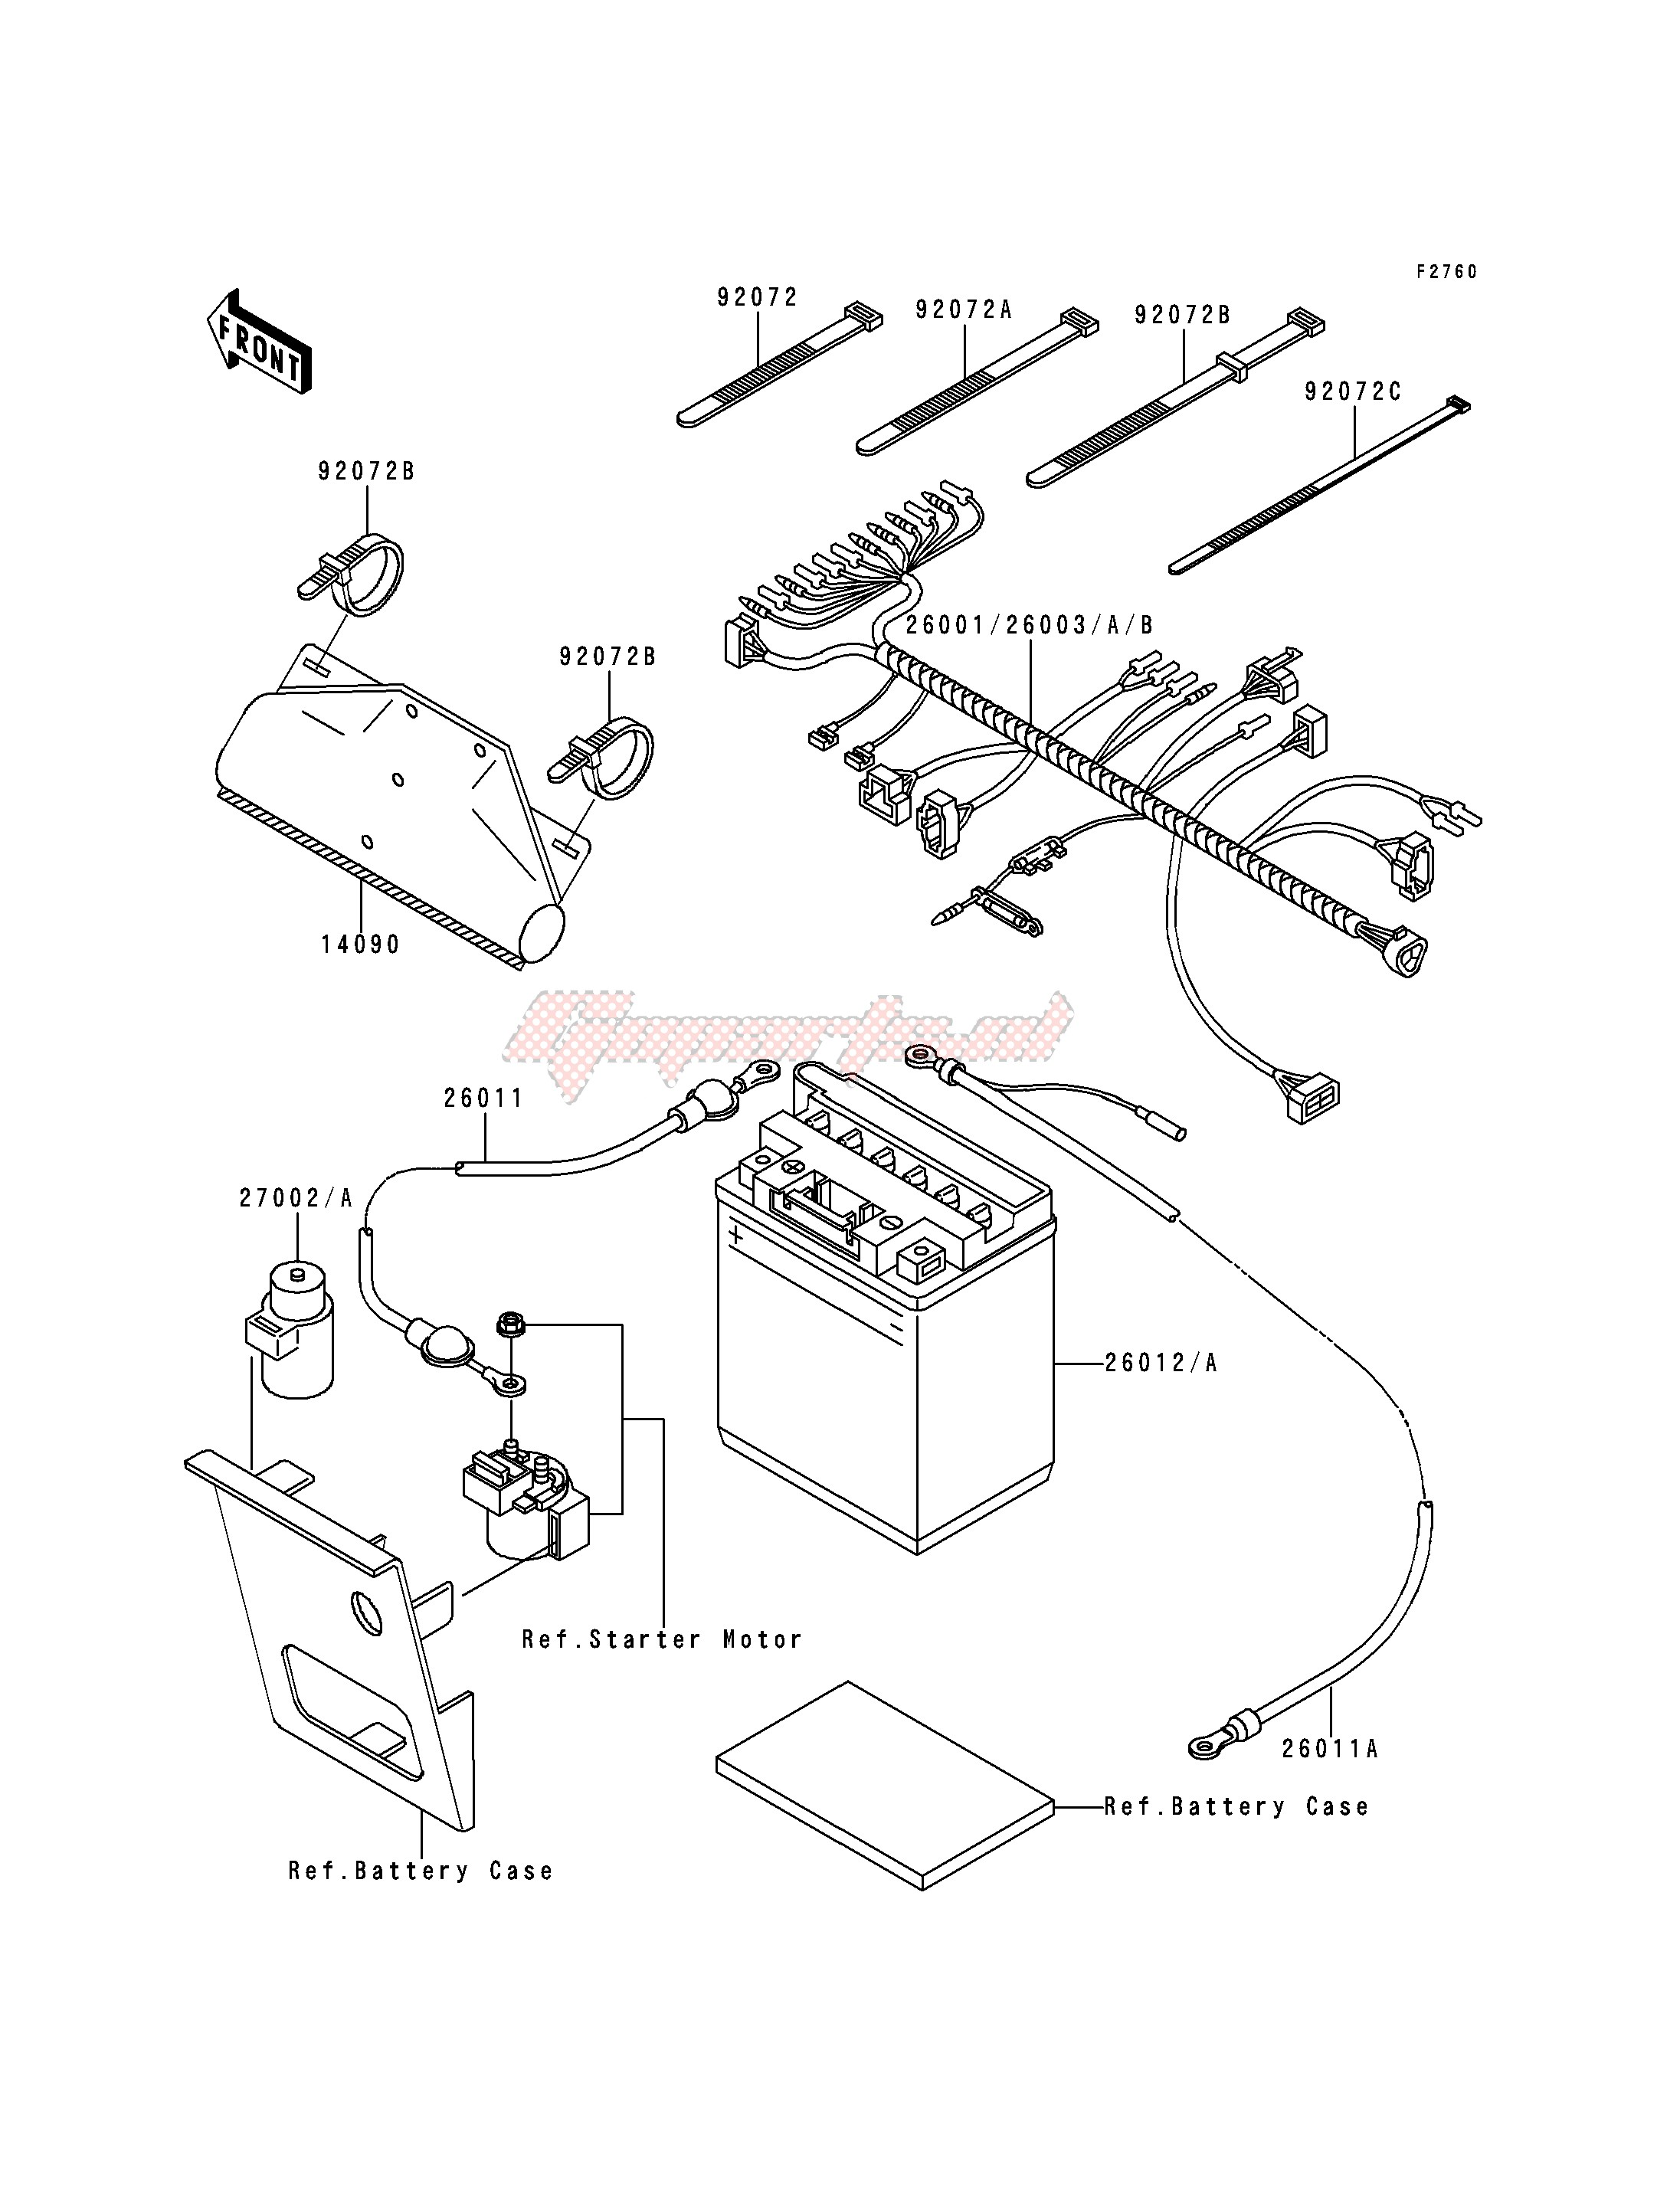 Electrical-CHASSIS ELECTRICAL EQUIPMENT